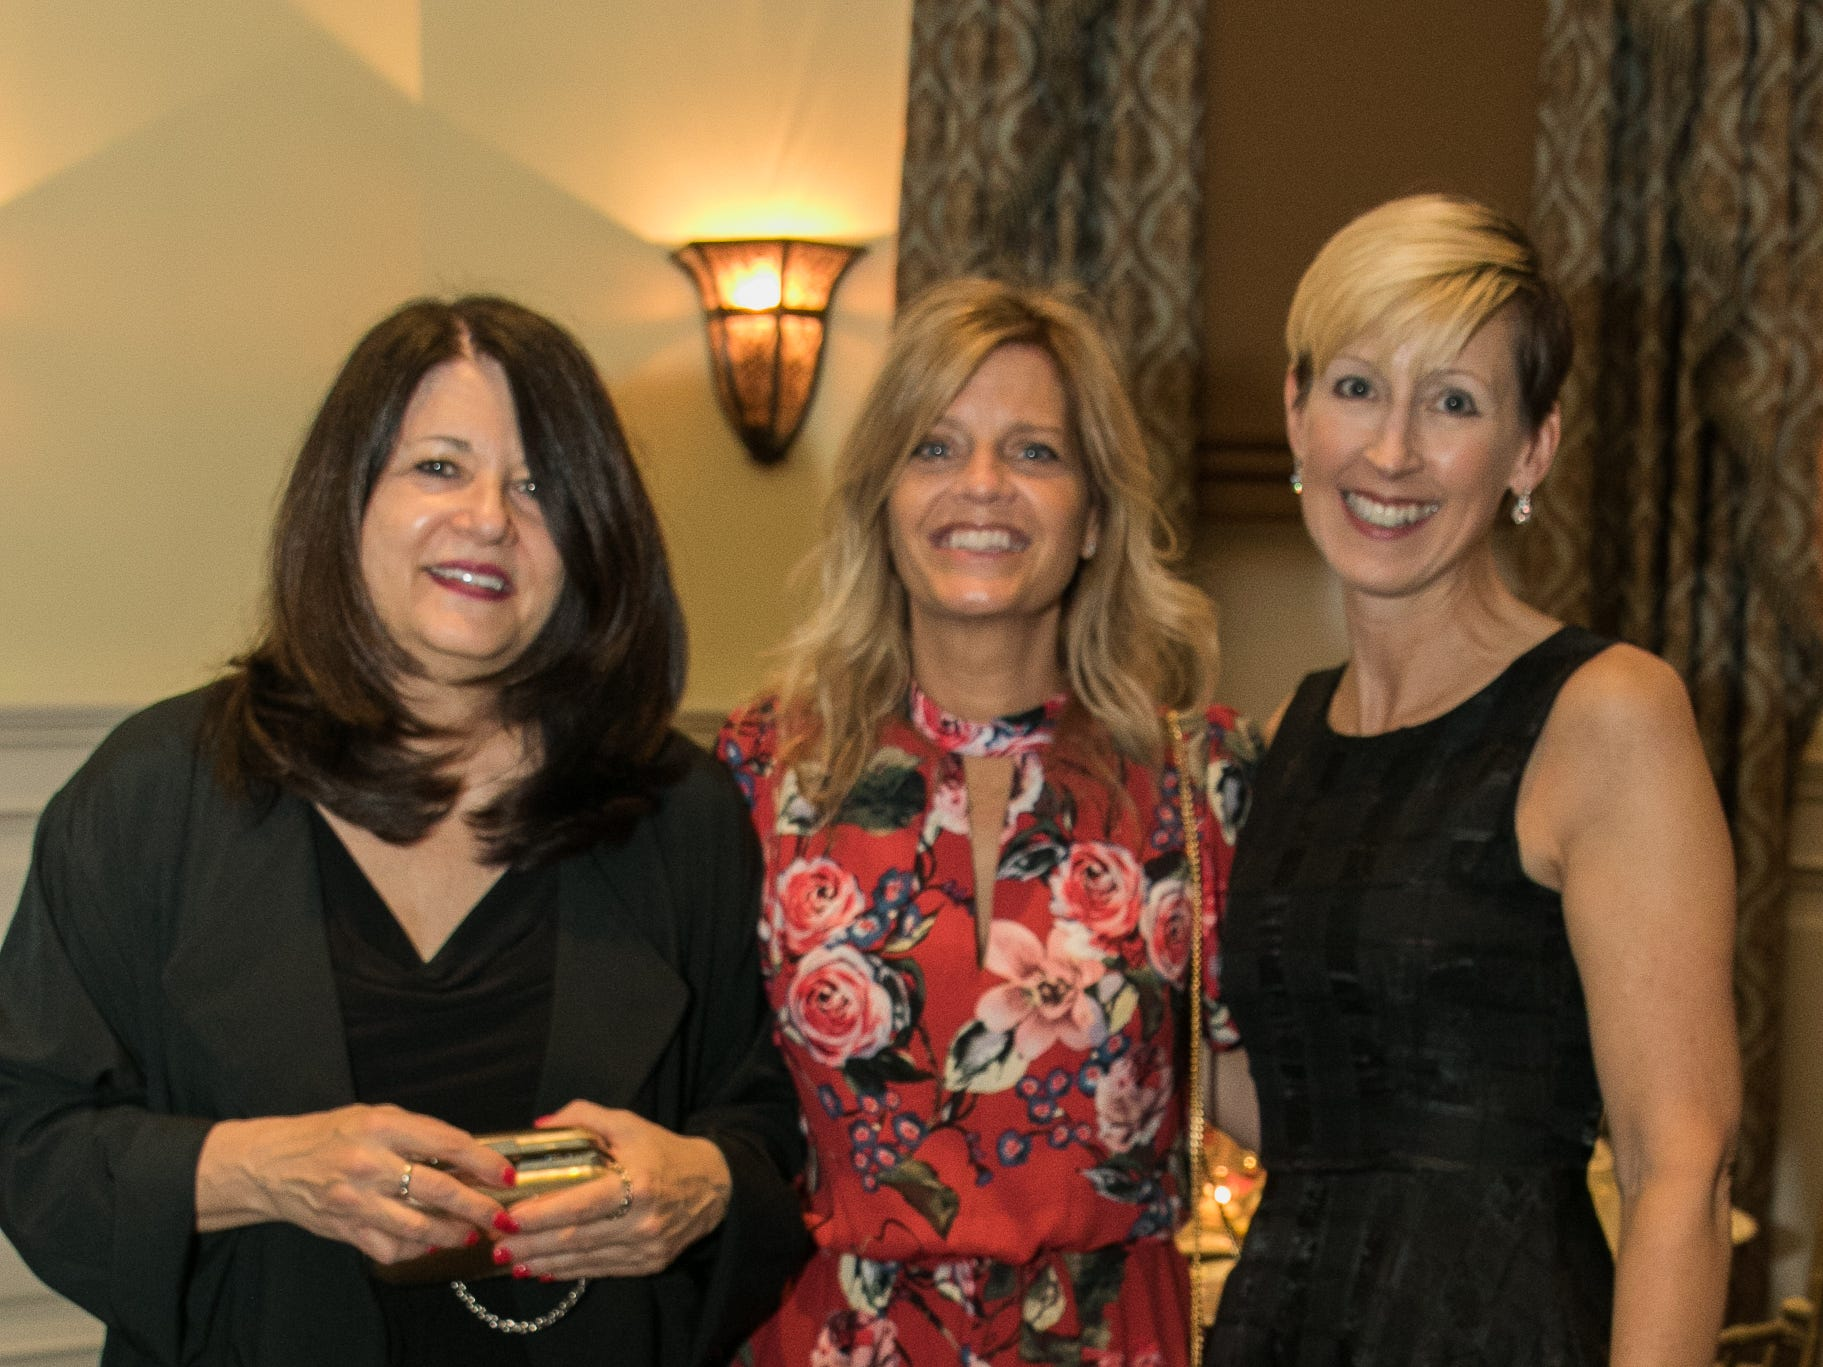 Nargaret McCombs, Mary Hosier, Vicki Holst. The Emmanuel Cancer Foundation 9th Annual Bash at The Brick House. 03/15/2019